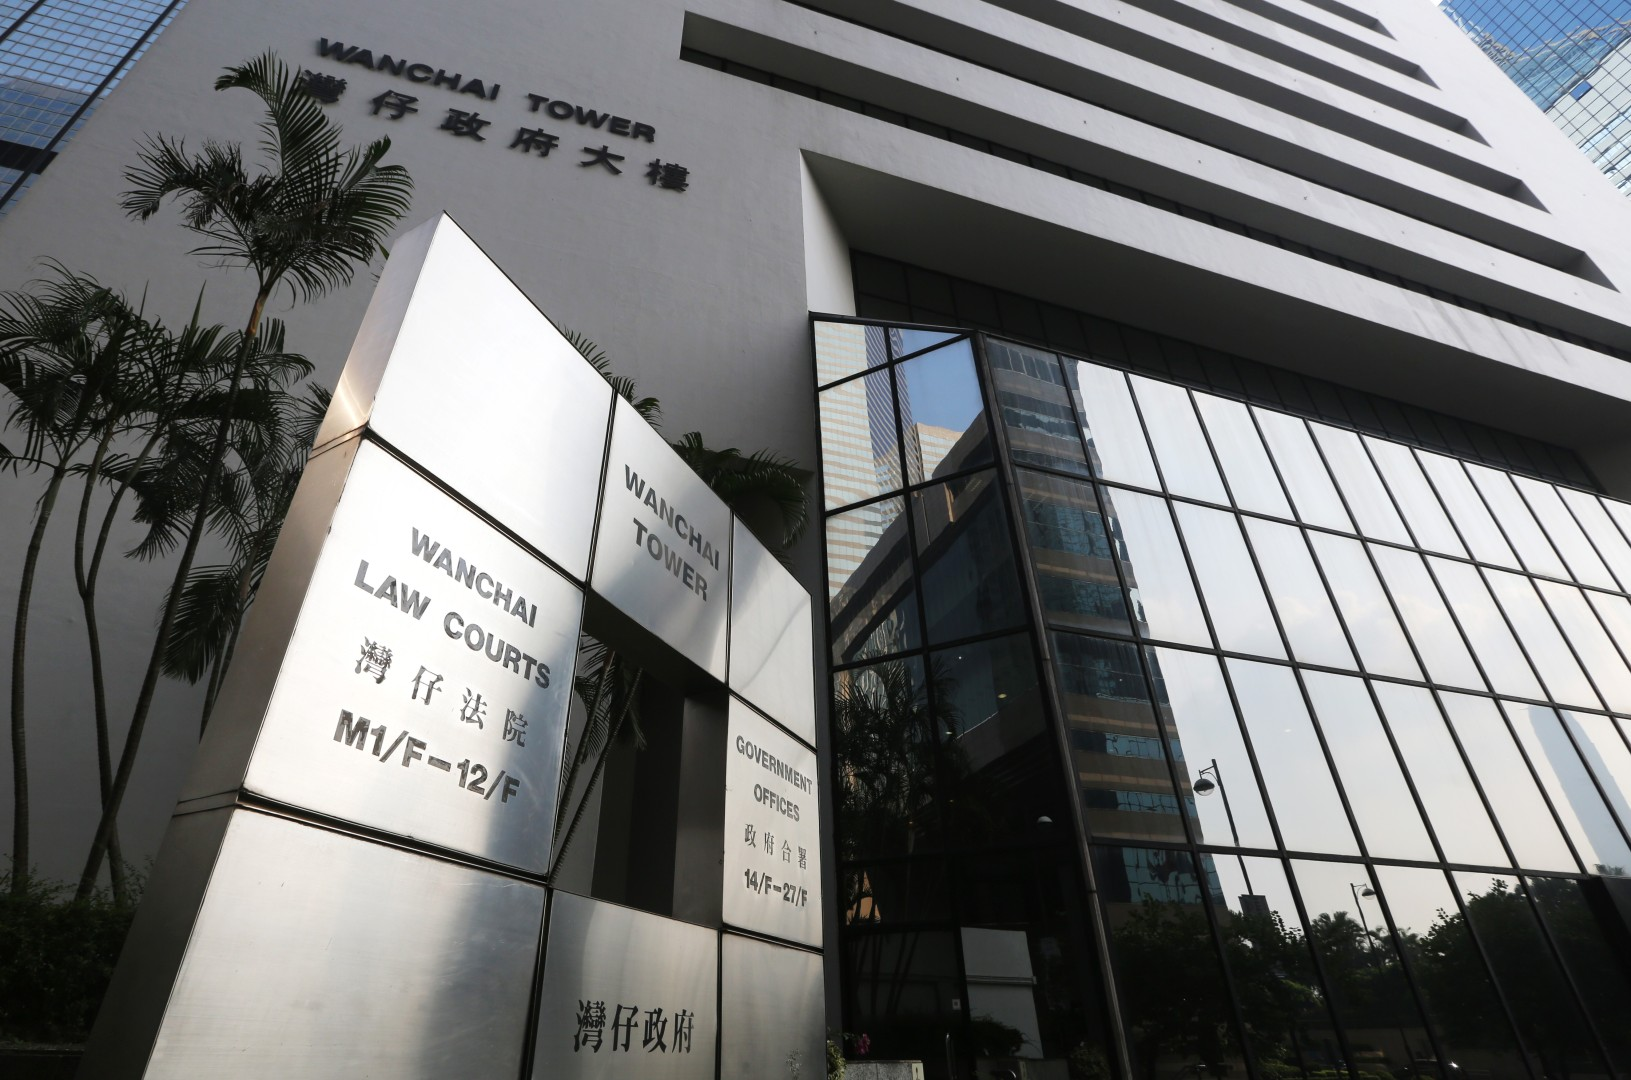 Hong Kong bus driver jailed 20 months for driving while ill